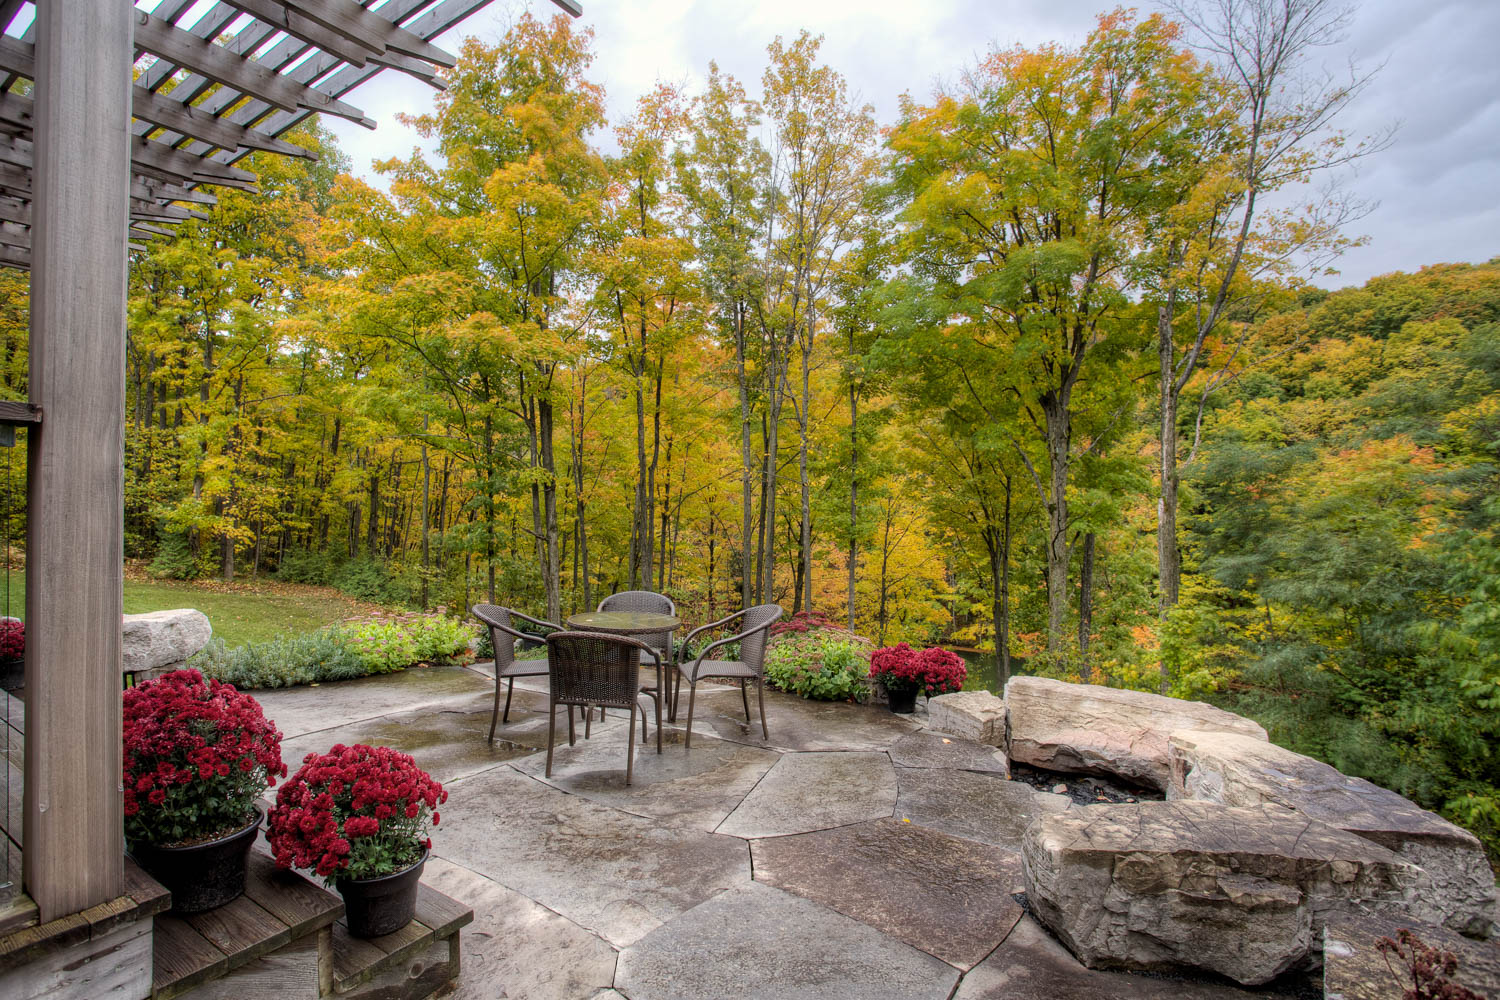 Whispering Pines Landscaping located in Orangeville Ontario